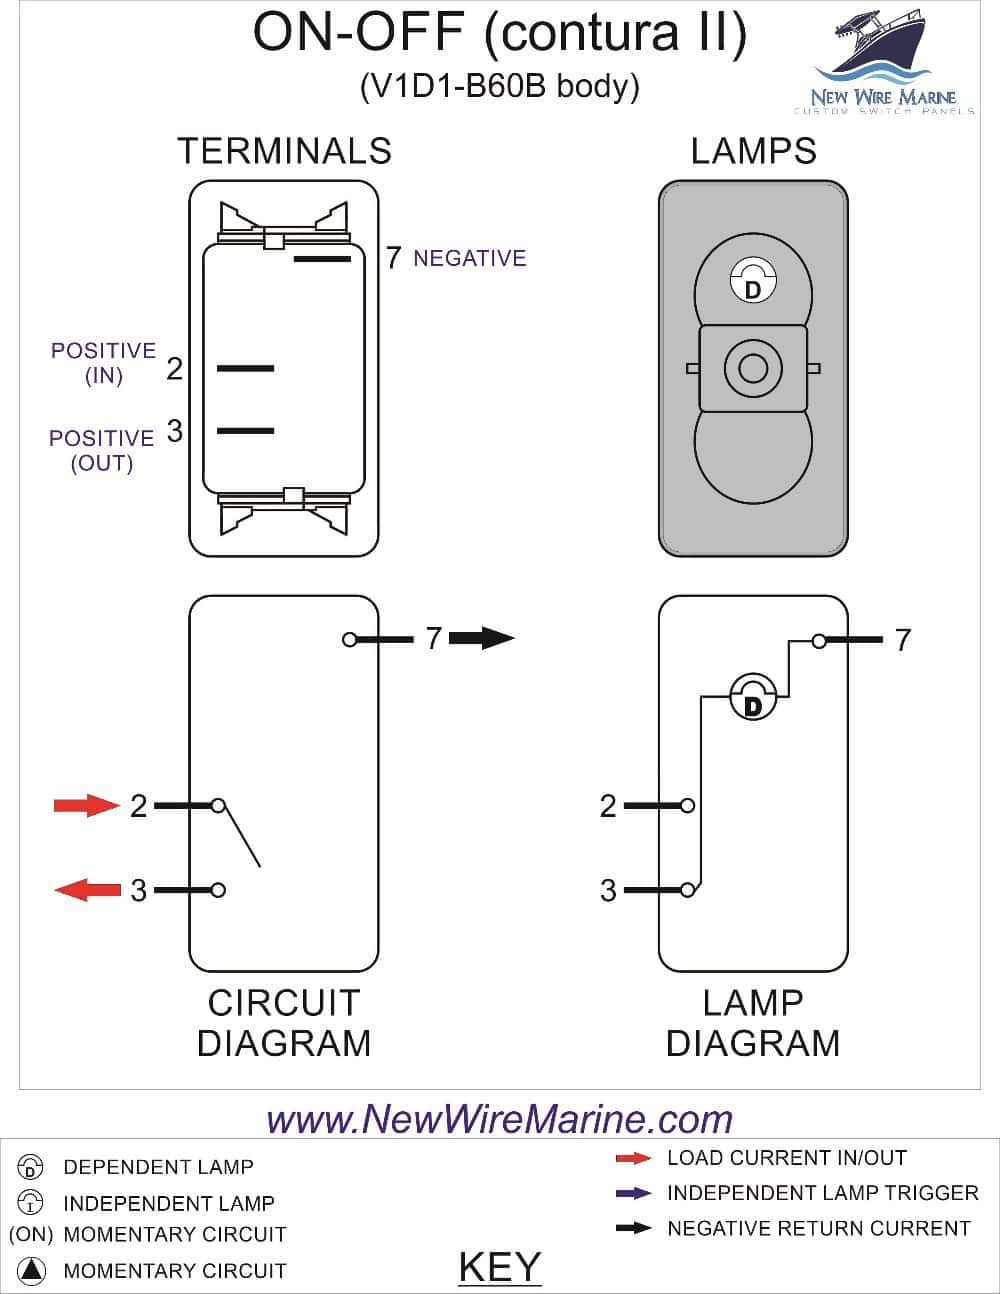 Rocker Switch Wiring Diagrams | New Wire Marine - Dpdt Switch Wiring Diagram